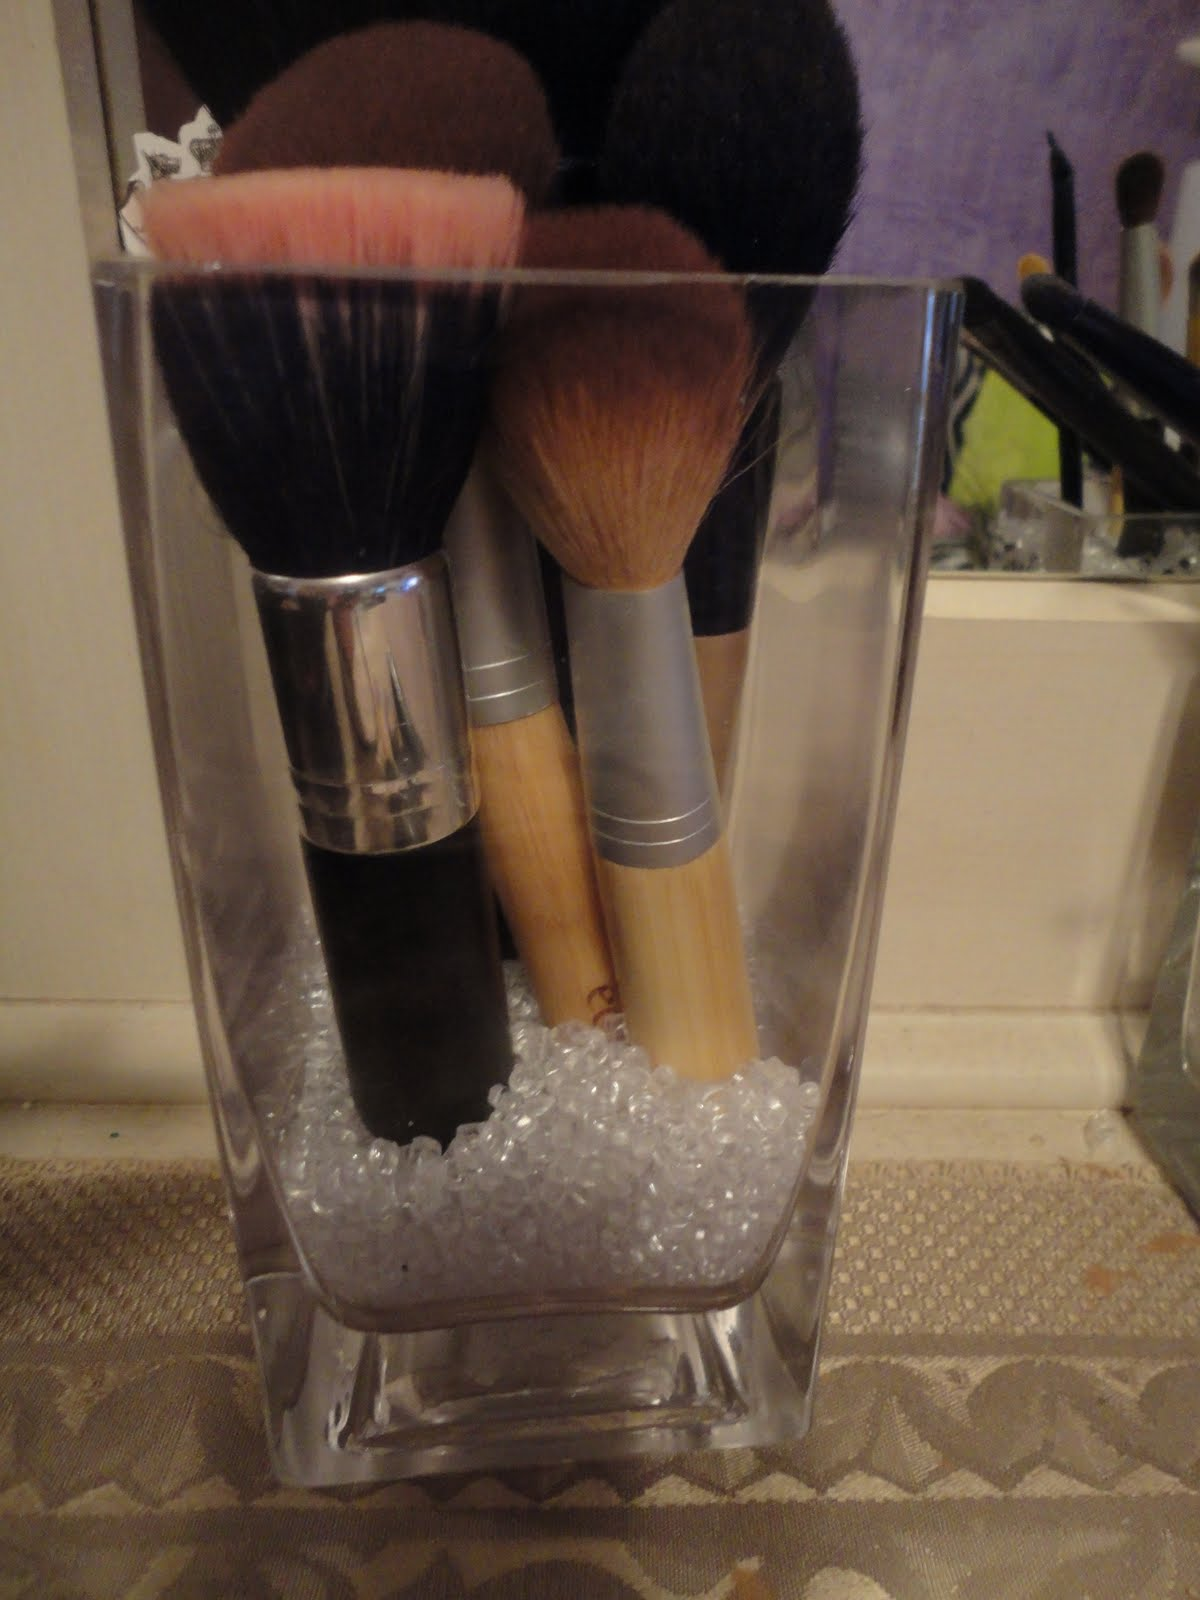 brush holder beads. this is my new brush holder which more for foundation brushes and blush brushes. i got the vase at walmart $5 some beads $3.